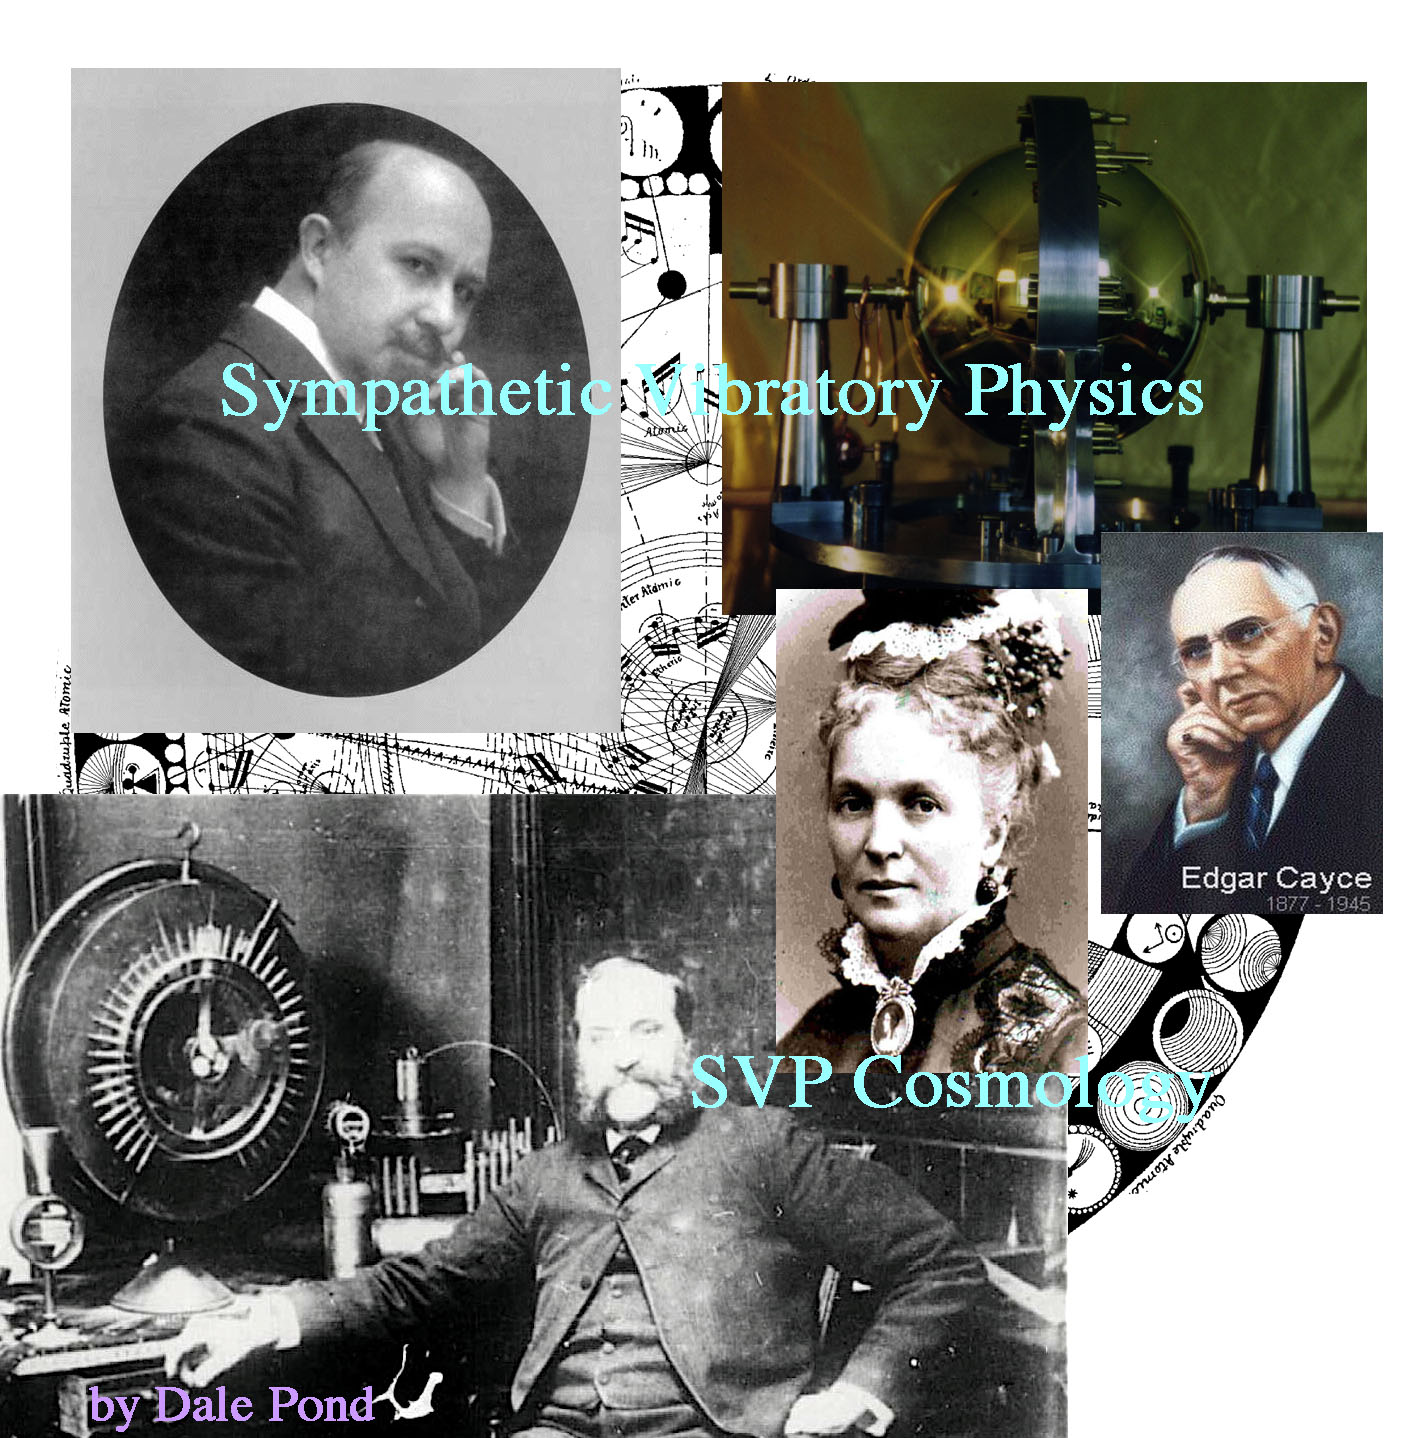 SVPcosmology